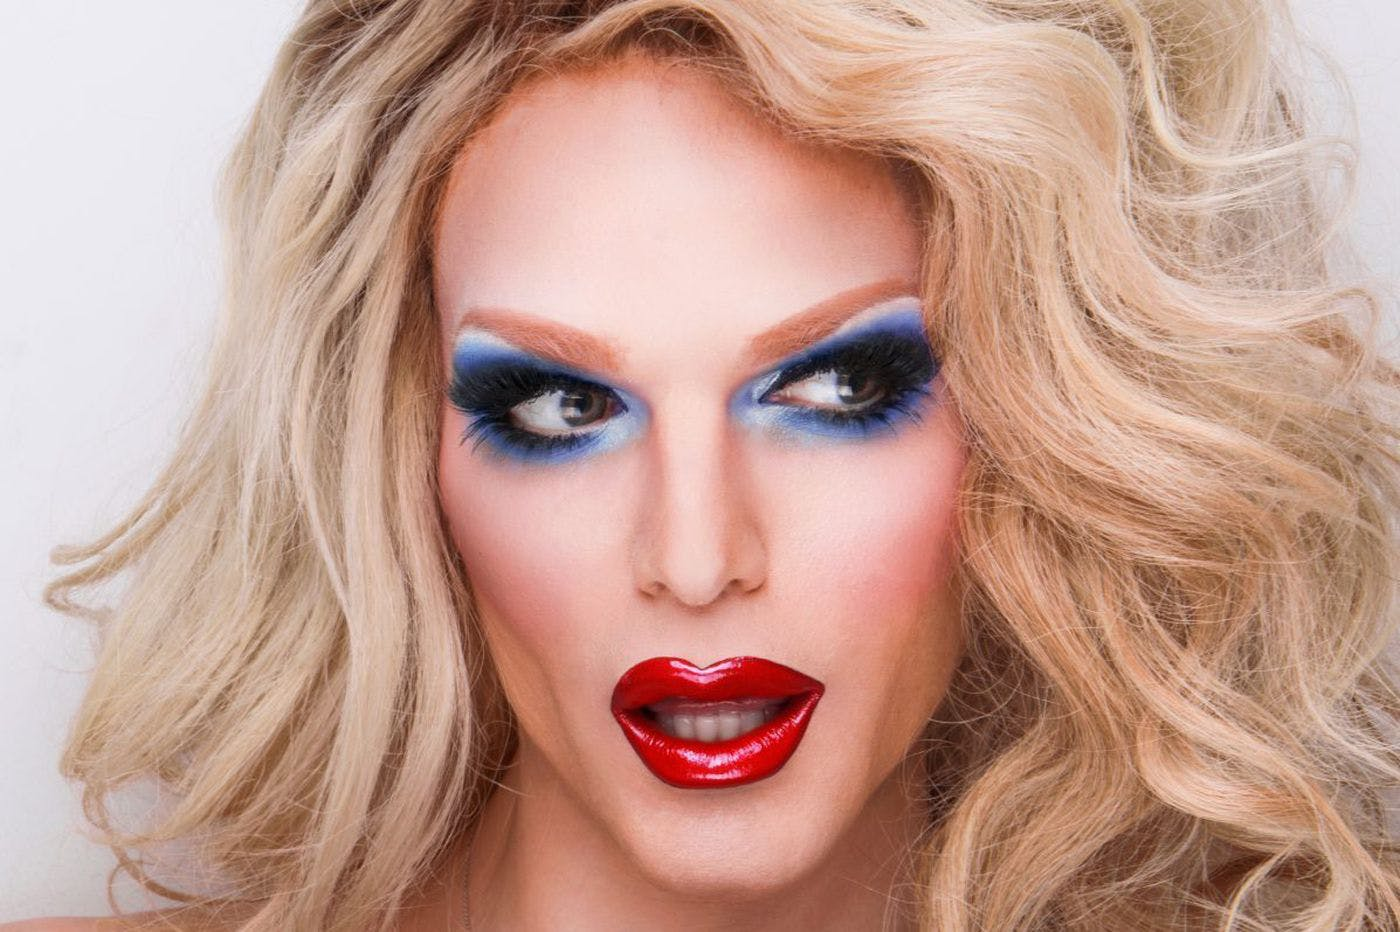 Another drag show is on the way, this time hosted by Willam